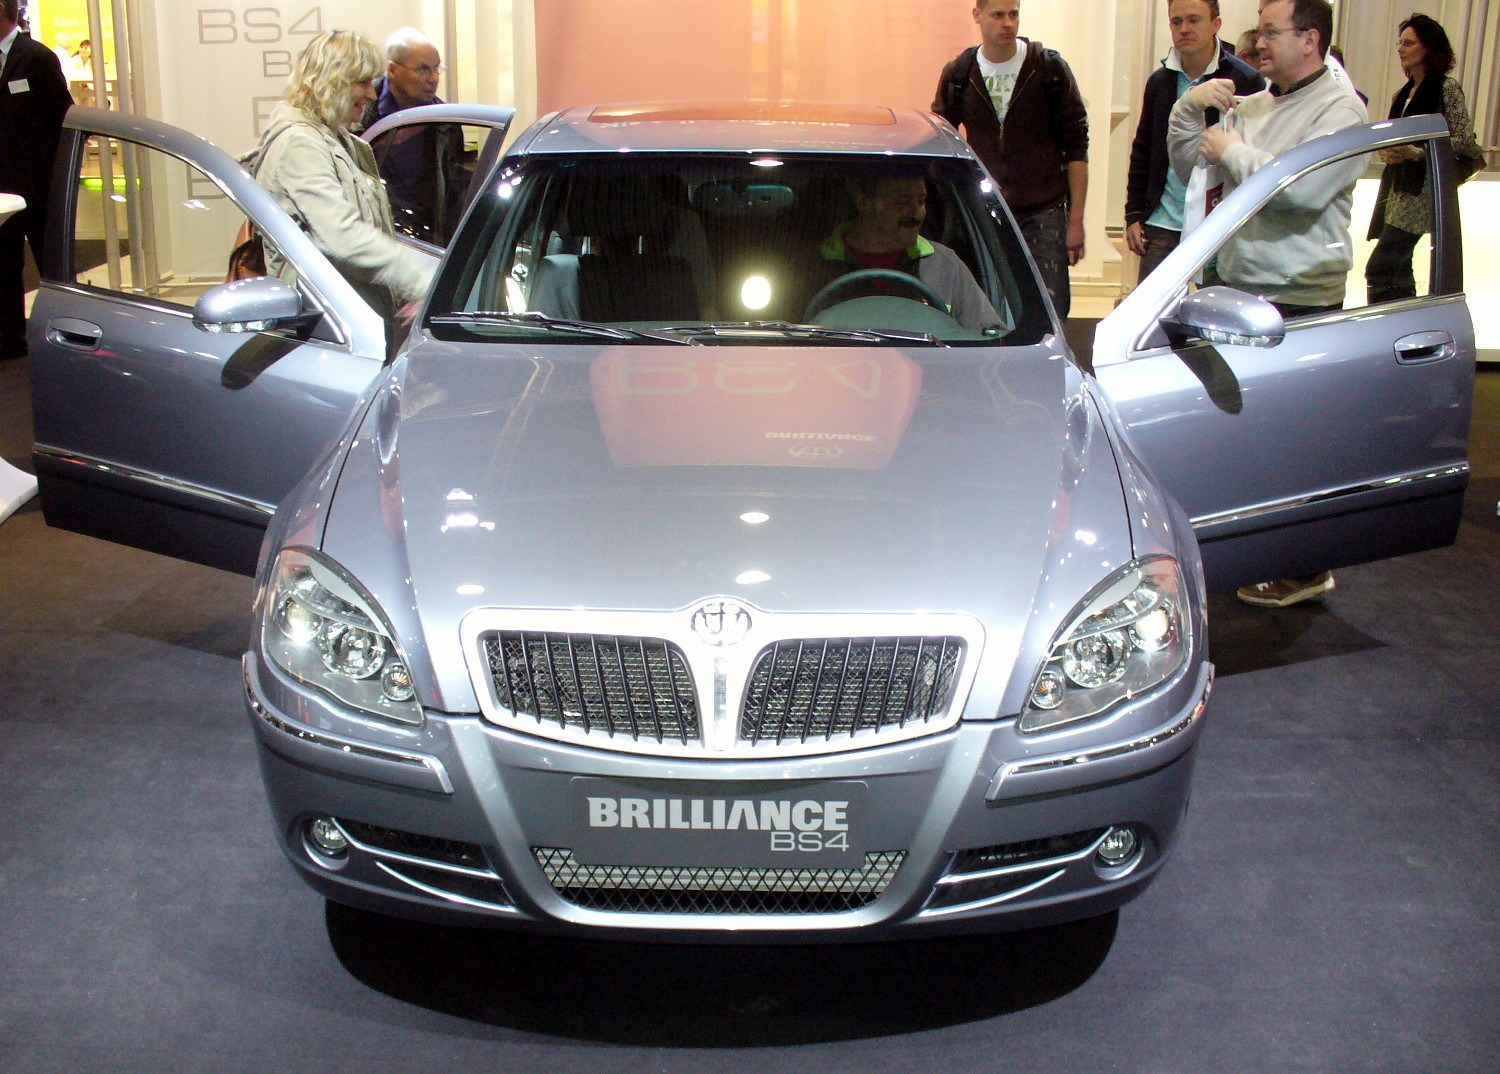 Brilliance BS4 1.8